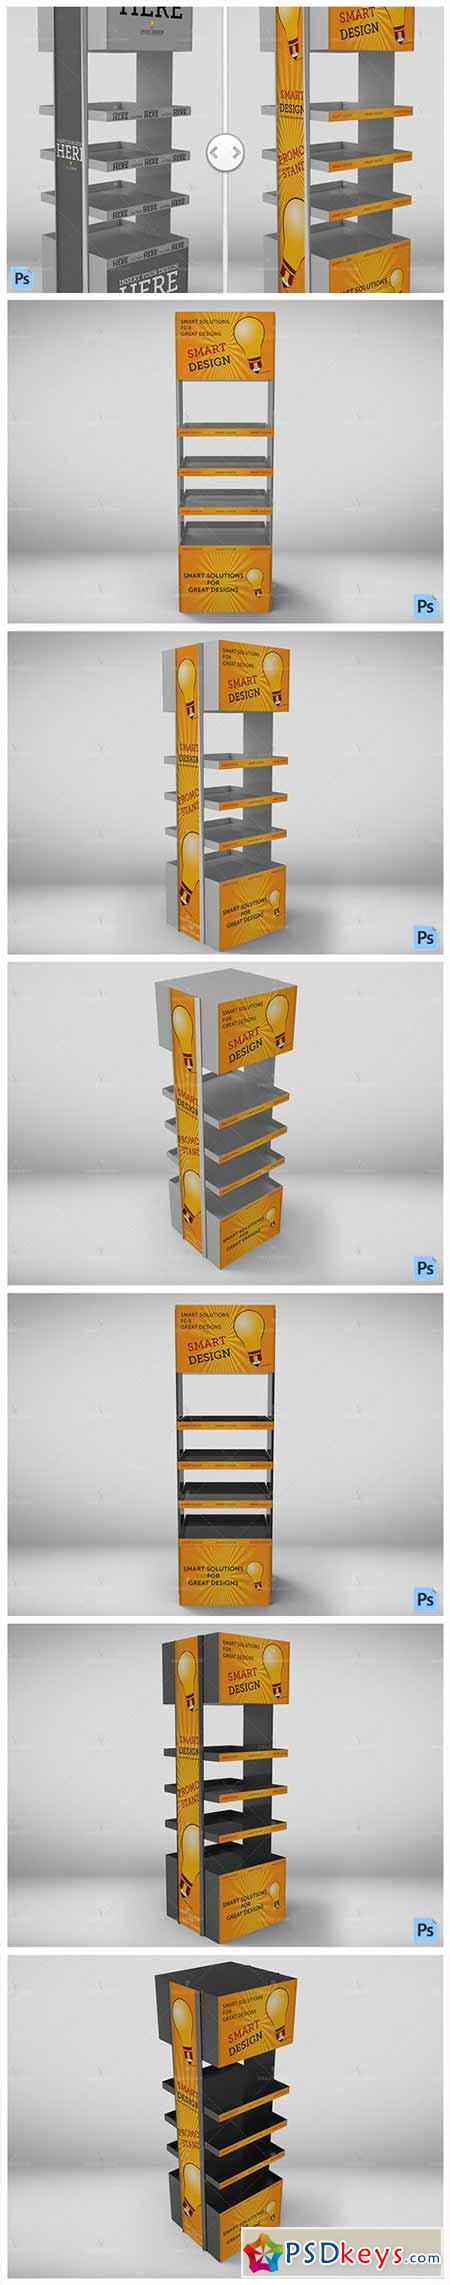 Promotional Store Shelf Stand Mockup 565819